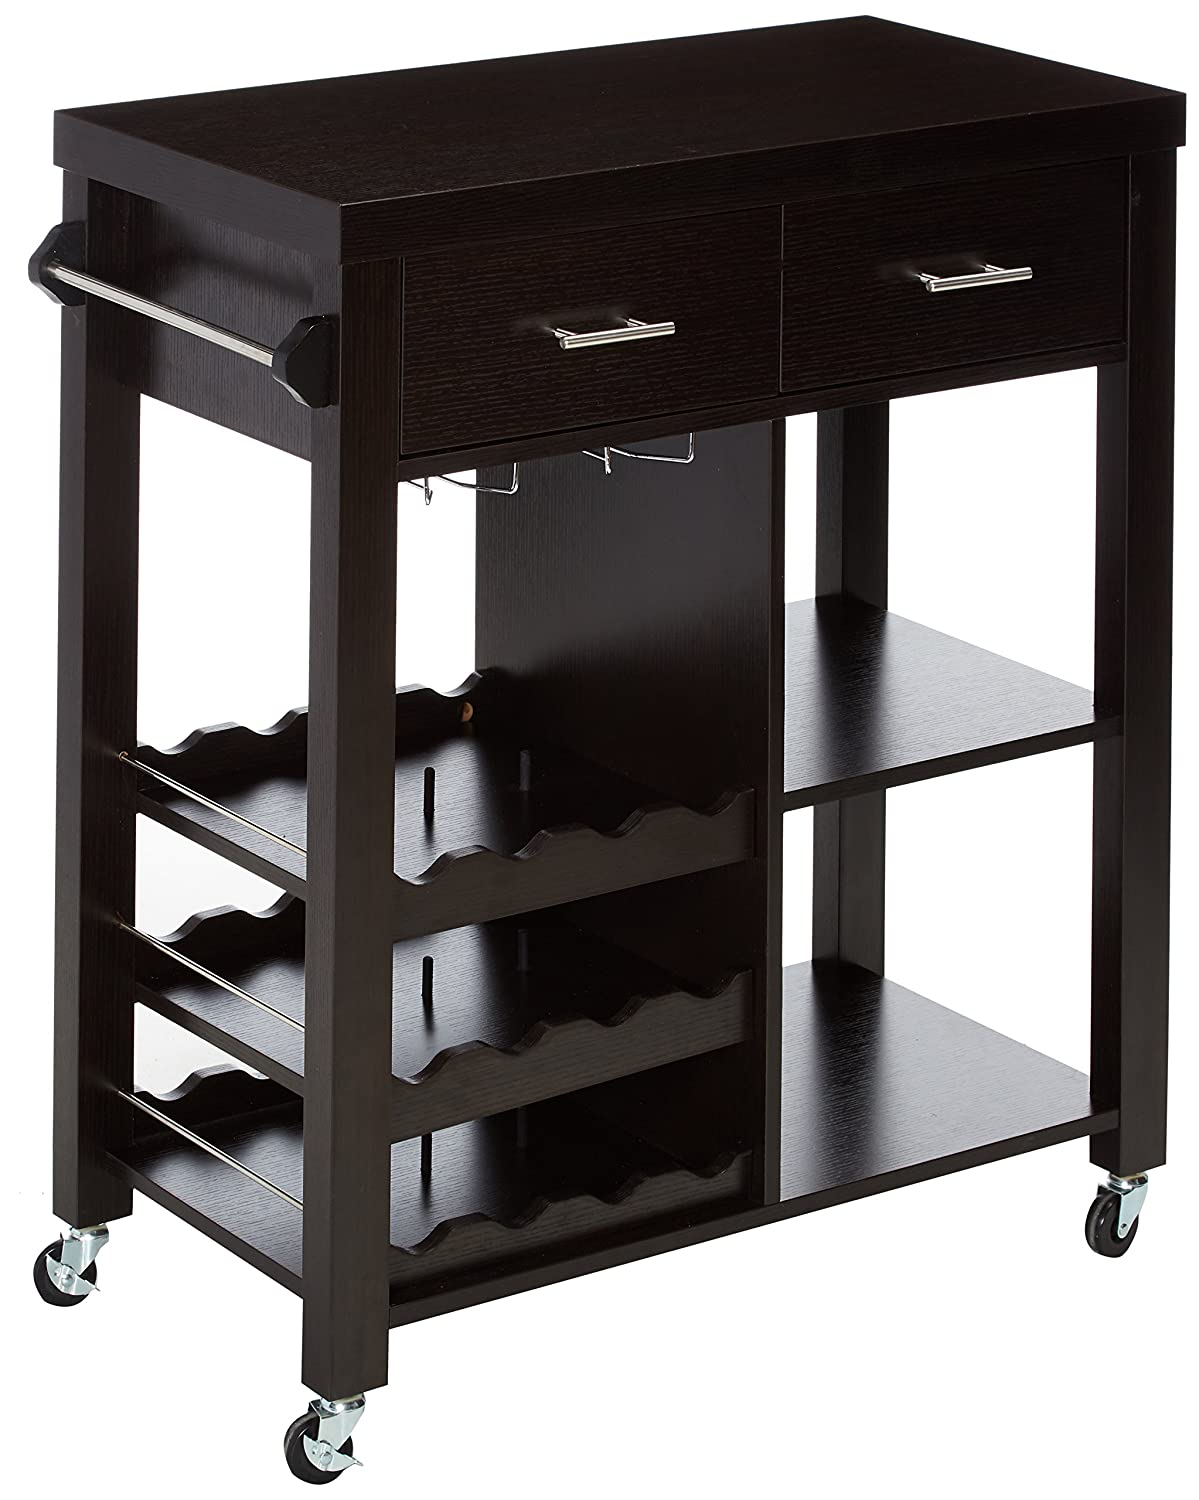 247SHOPATHOME IDI-12581 Kitchen-carts, Cappuccino Furniture of America